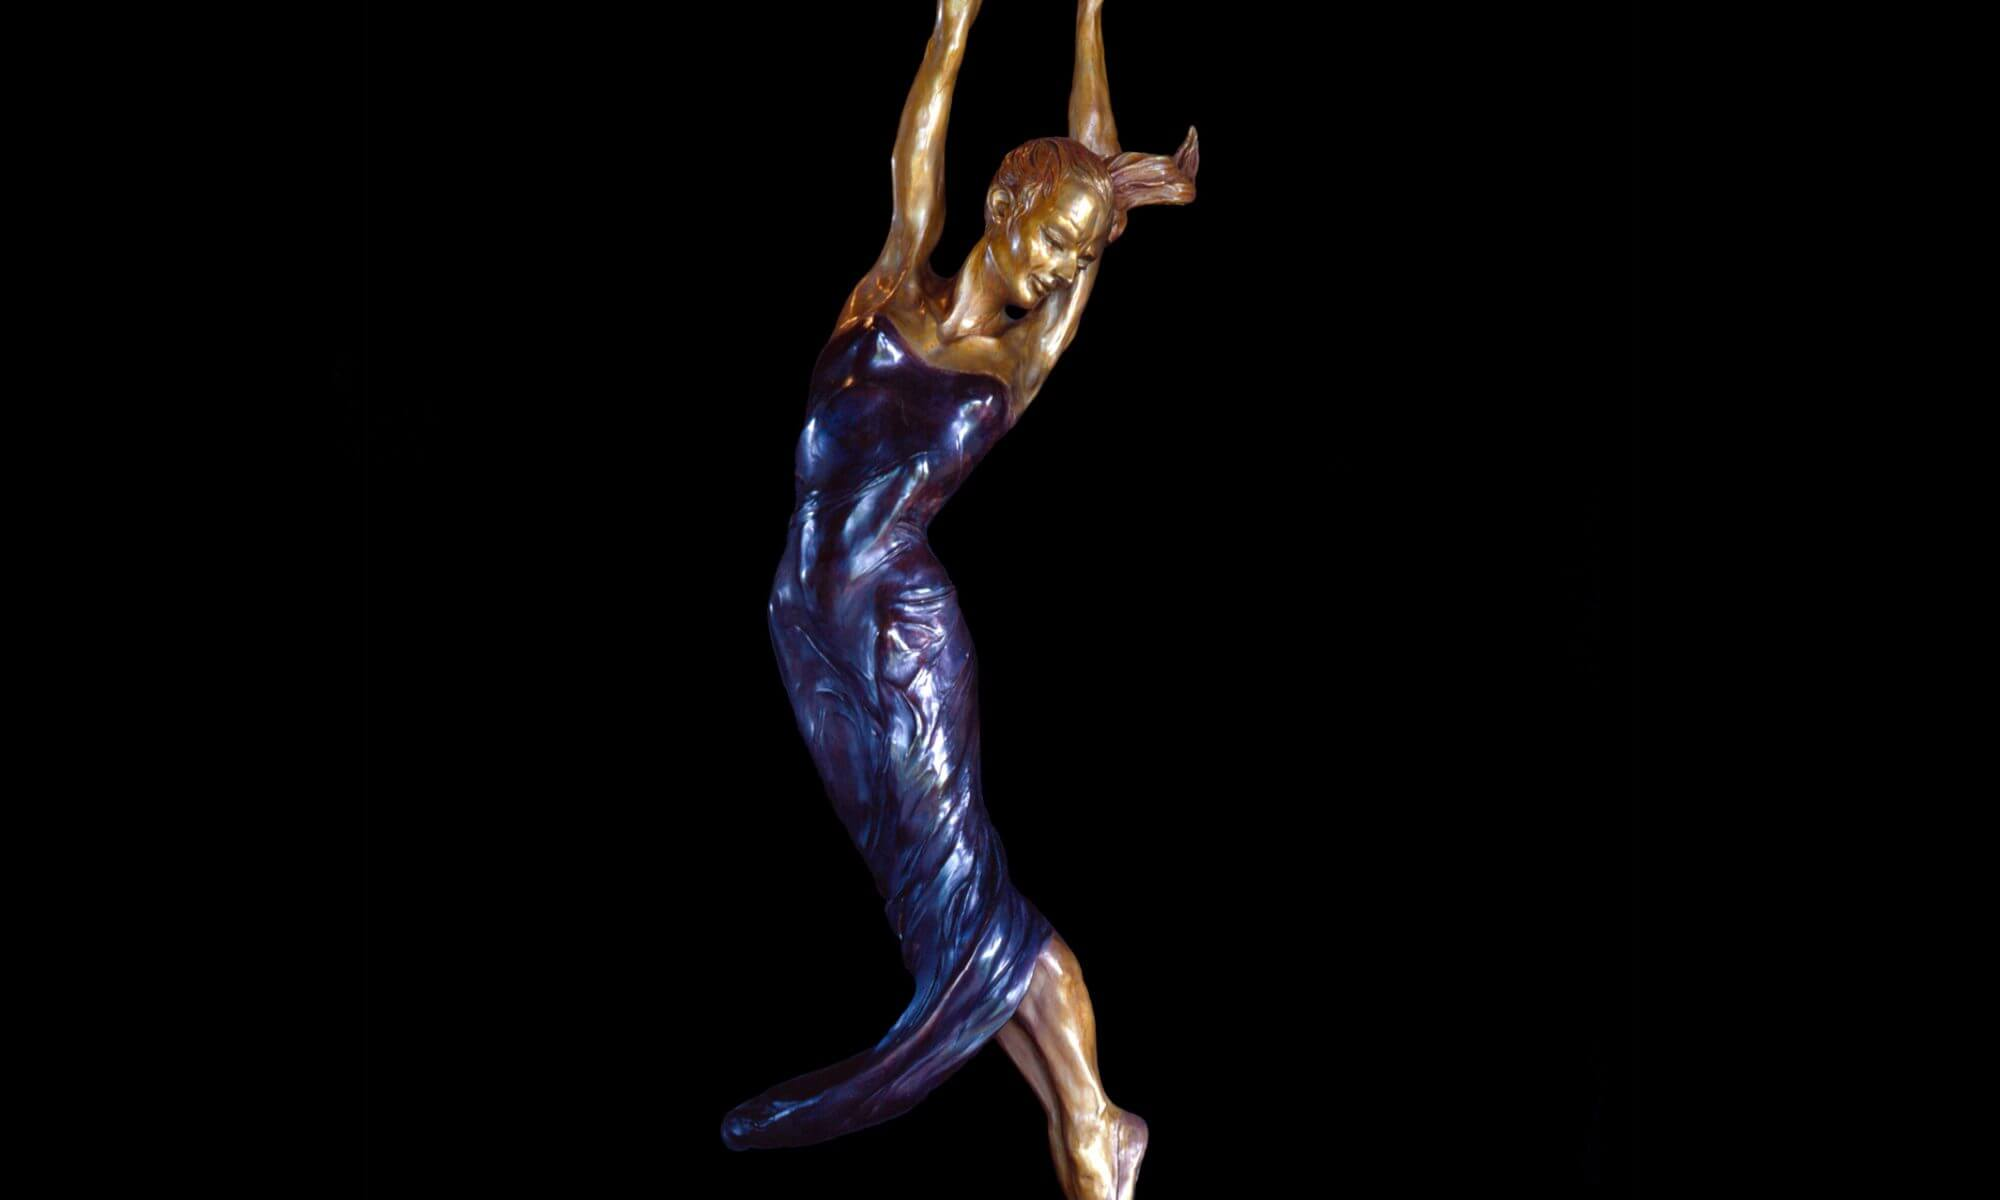 Allegro a half life size female figurative bronze dancer by sculptor Andrew DeVries